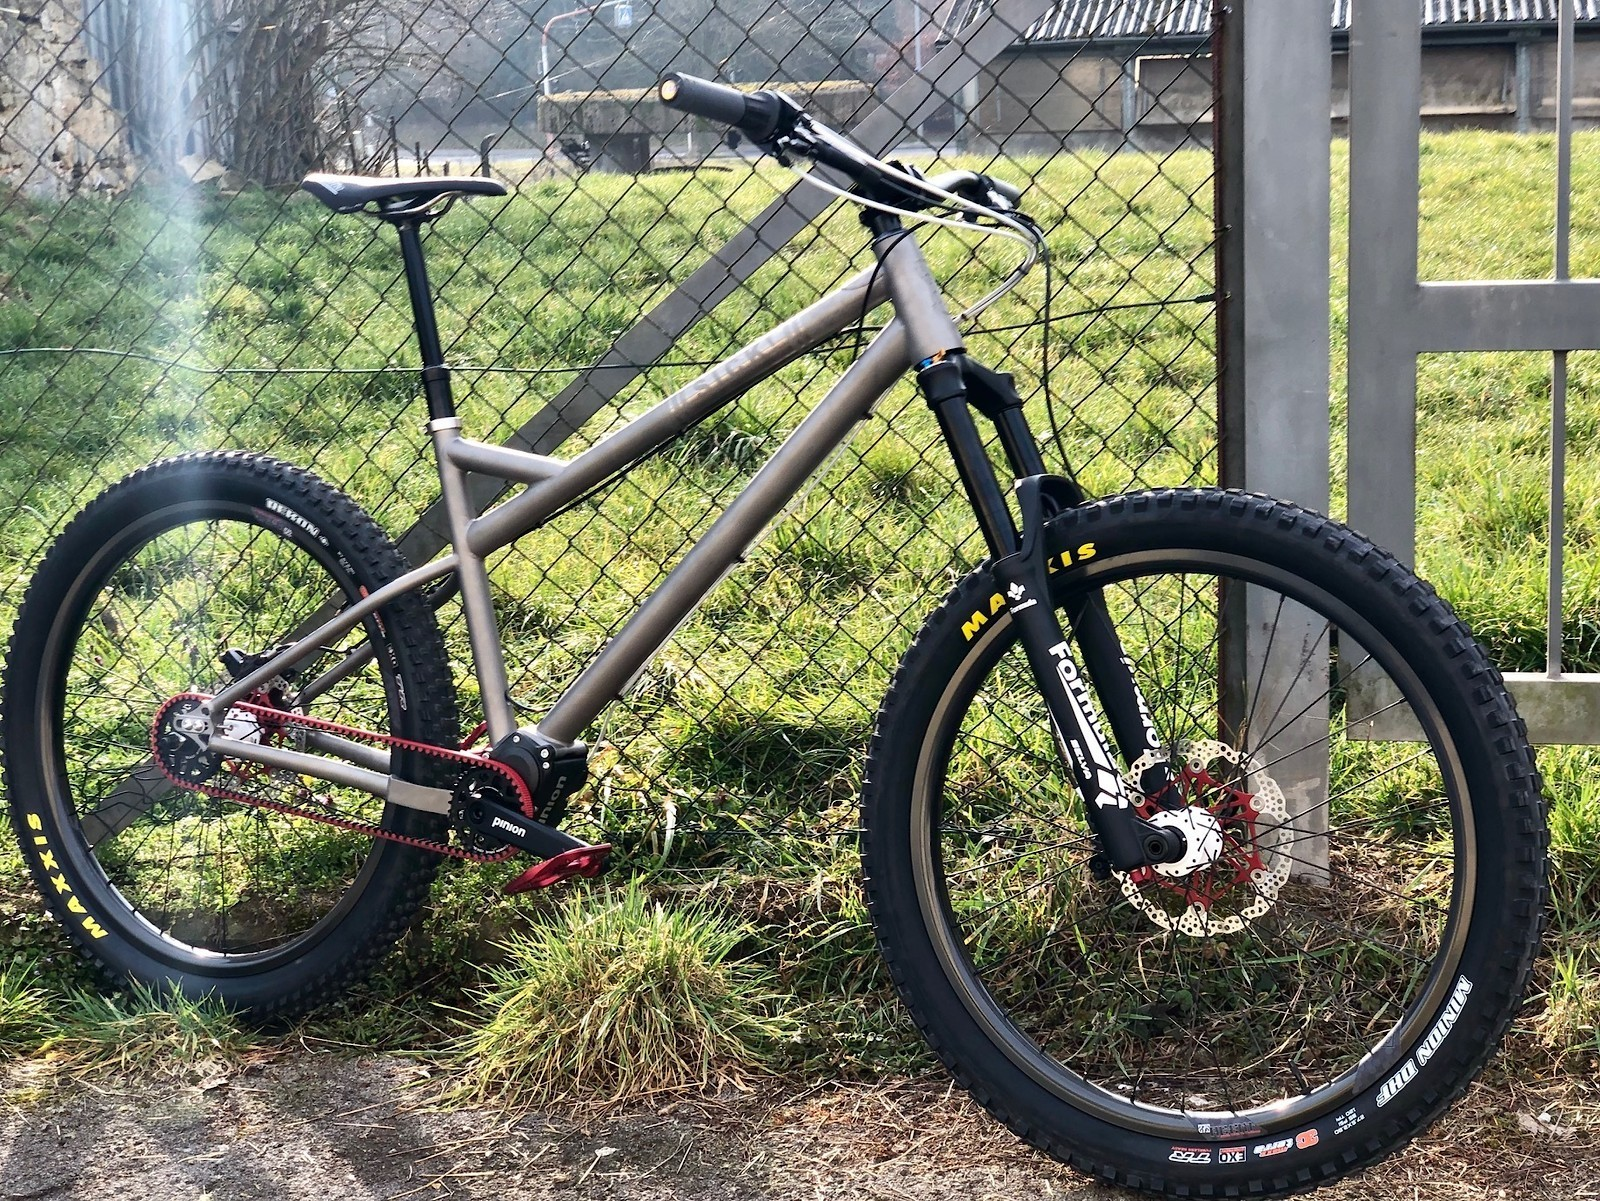 Sick Bicycles Wulfbaron - 2019 Vital Bike of the Day Collection - Mountain Biking Pictures - Vital MTB